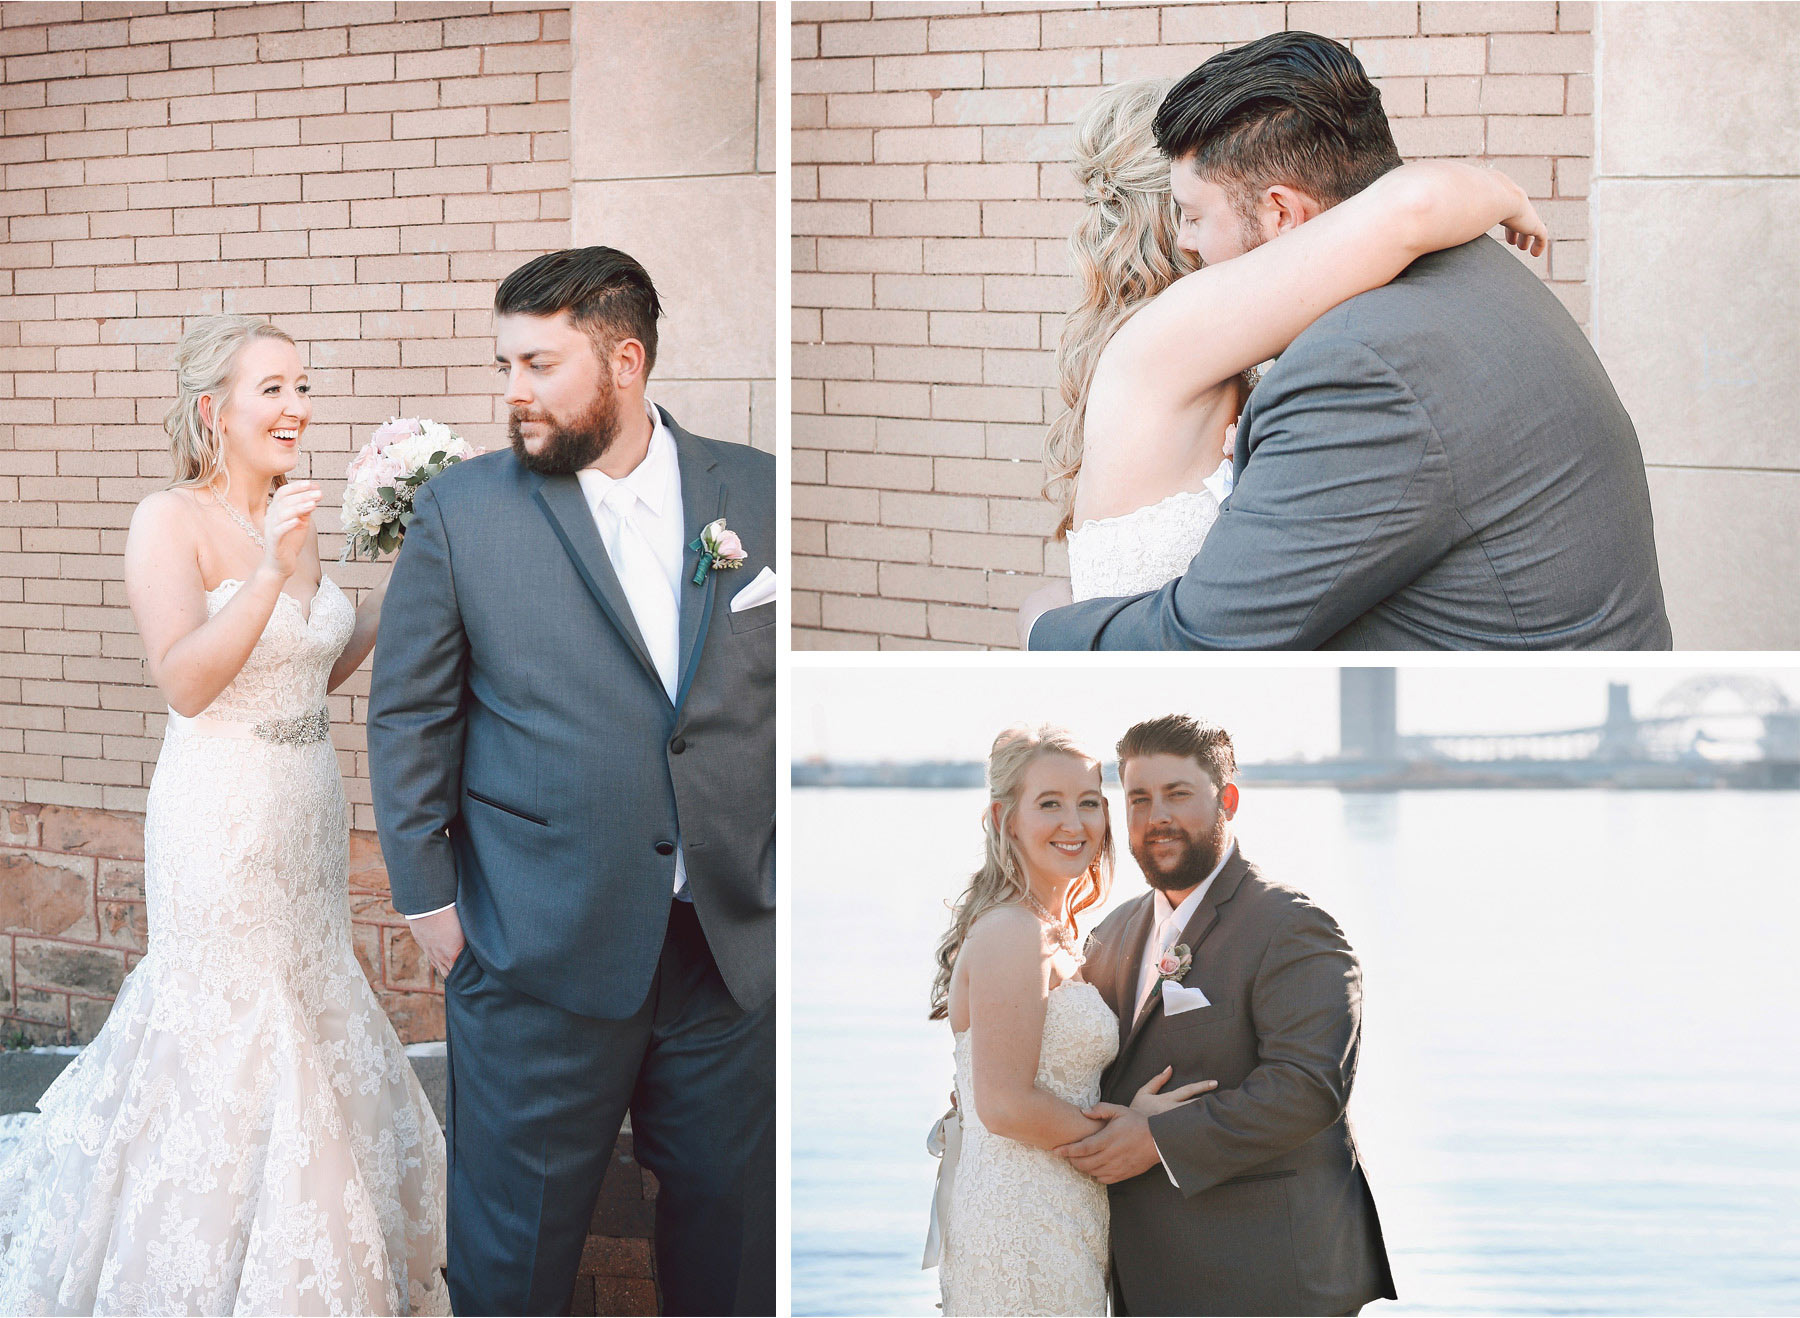 07-Duluth-Minnesota-Wedding-Photographer-by-Andrew-Vick-Photography-Fall-Autumn-Greysolon-Ballroom-First-Meeting-Look-Bride-Groom-Dress-Embrace-Lake-Superior-Vintage-Molly-and-Carson.jpg